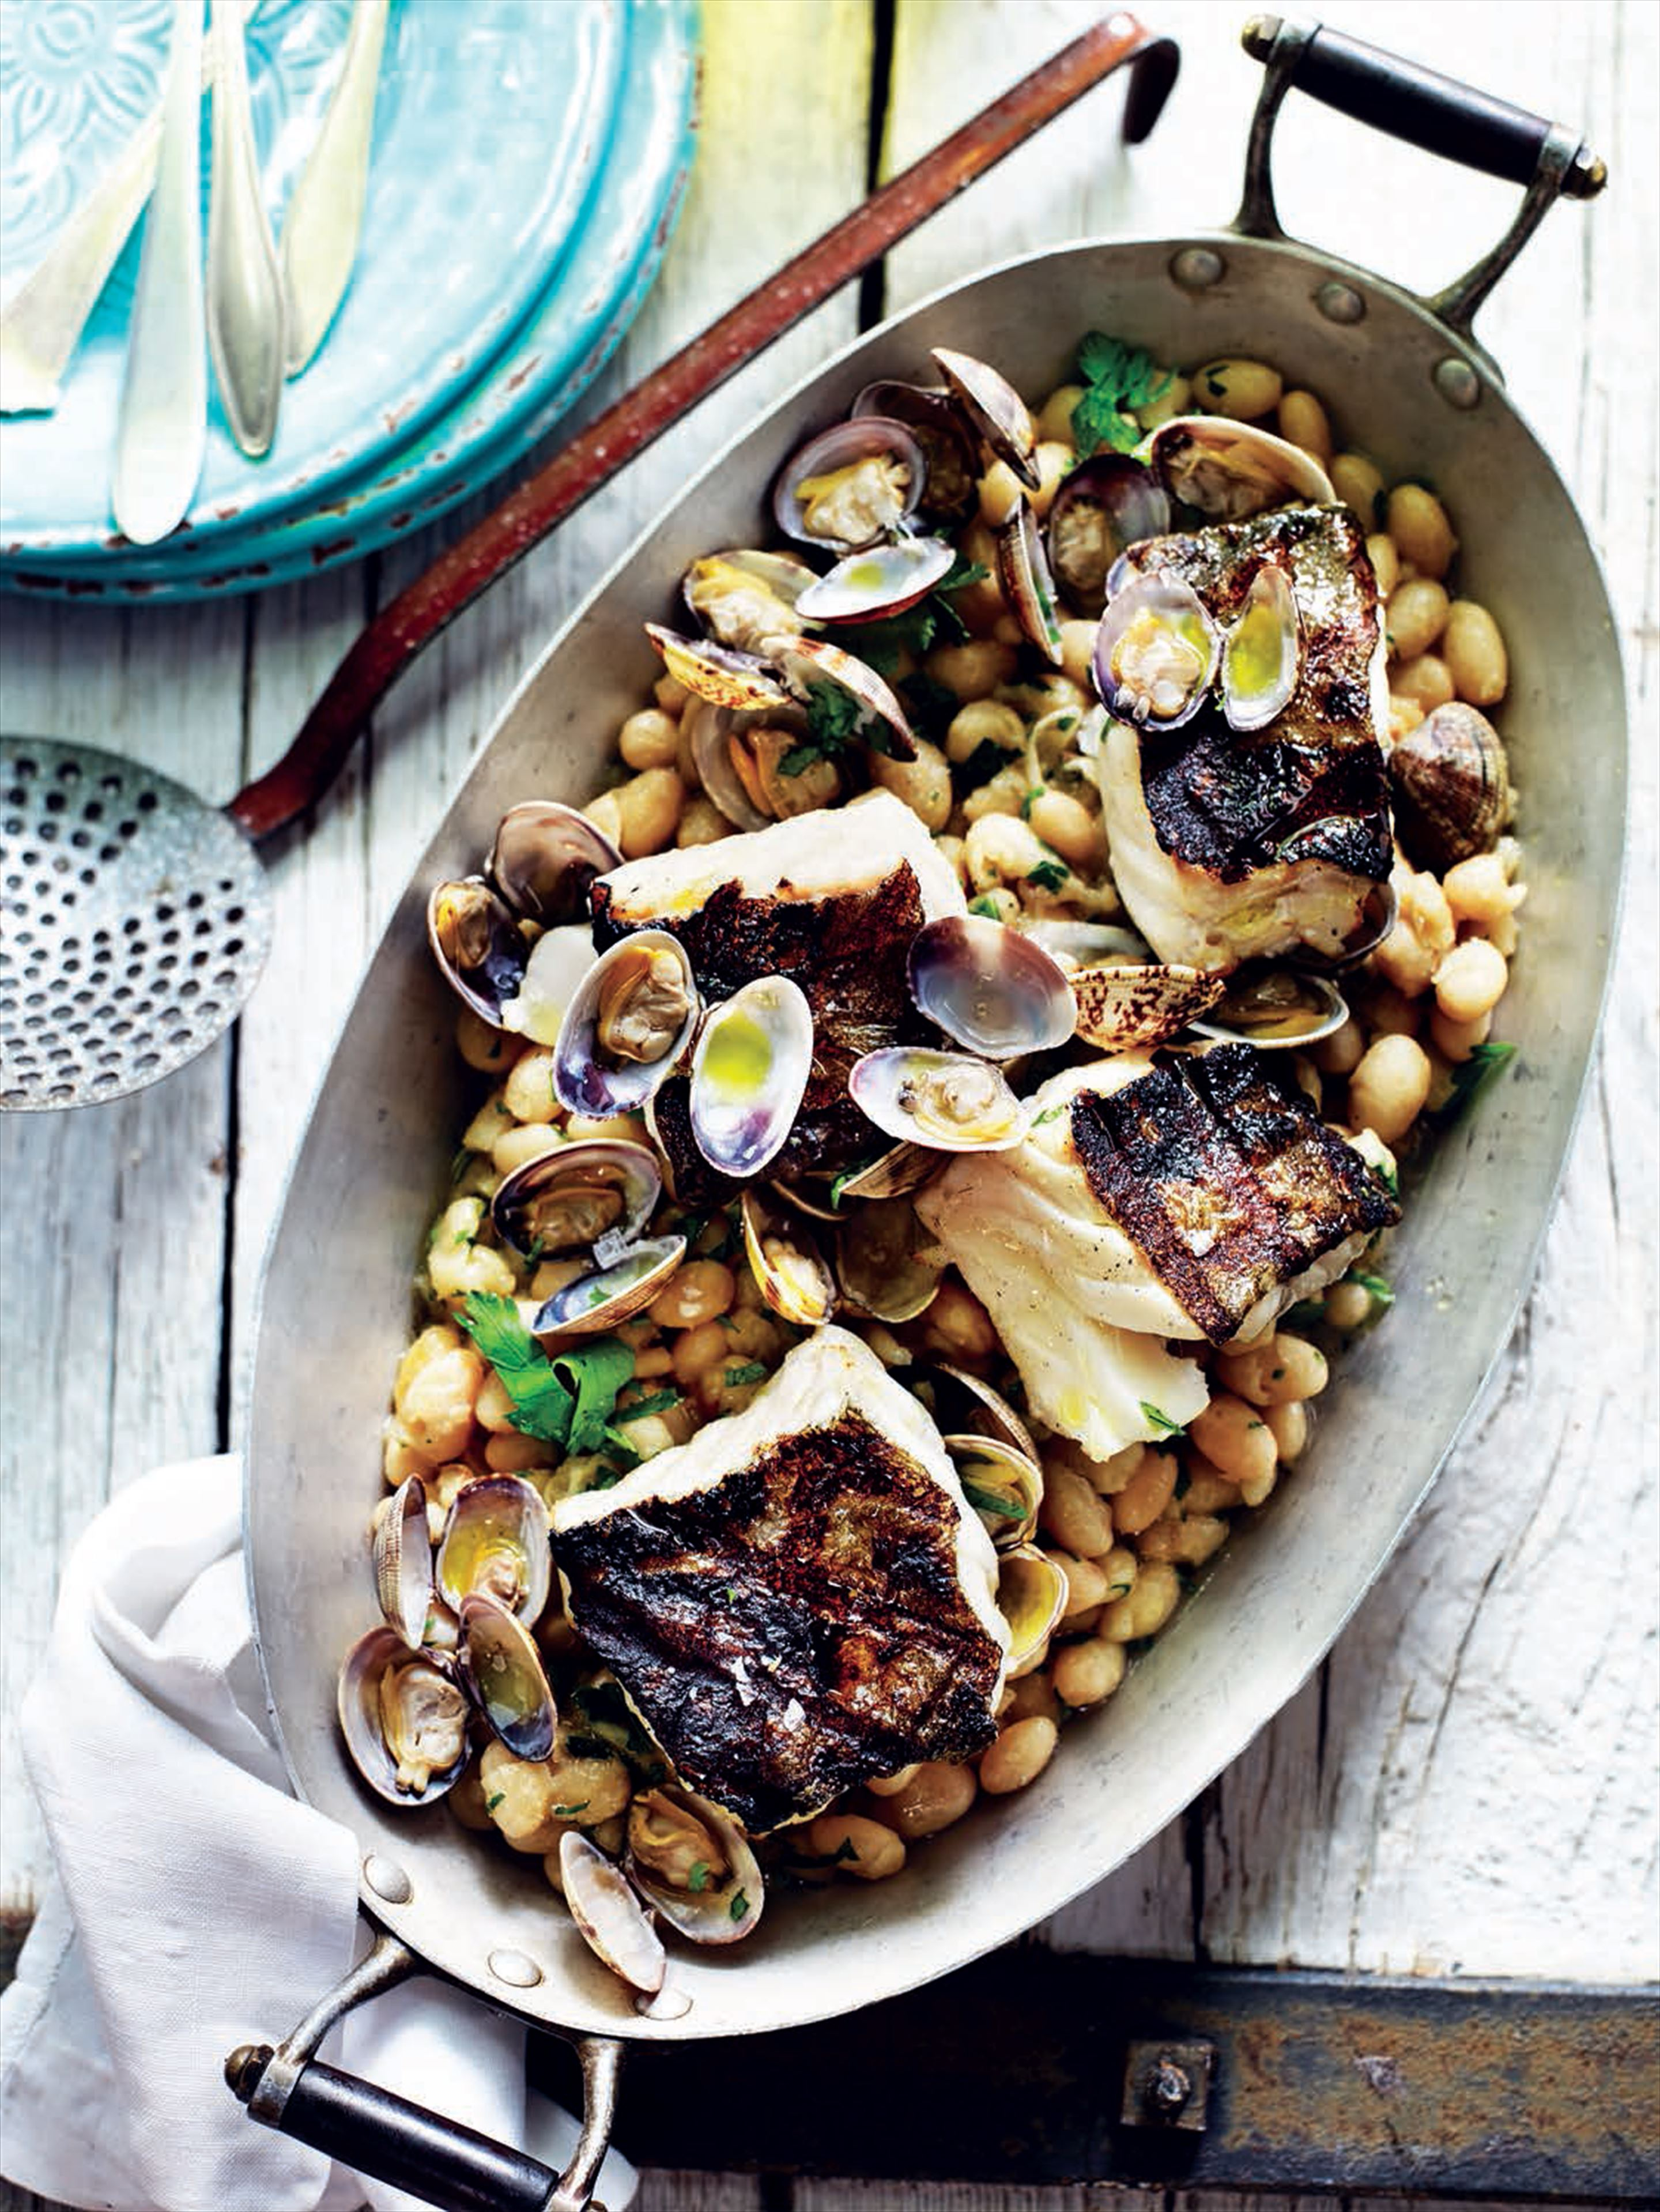 Smoked cod with white beans, clams and parsley